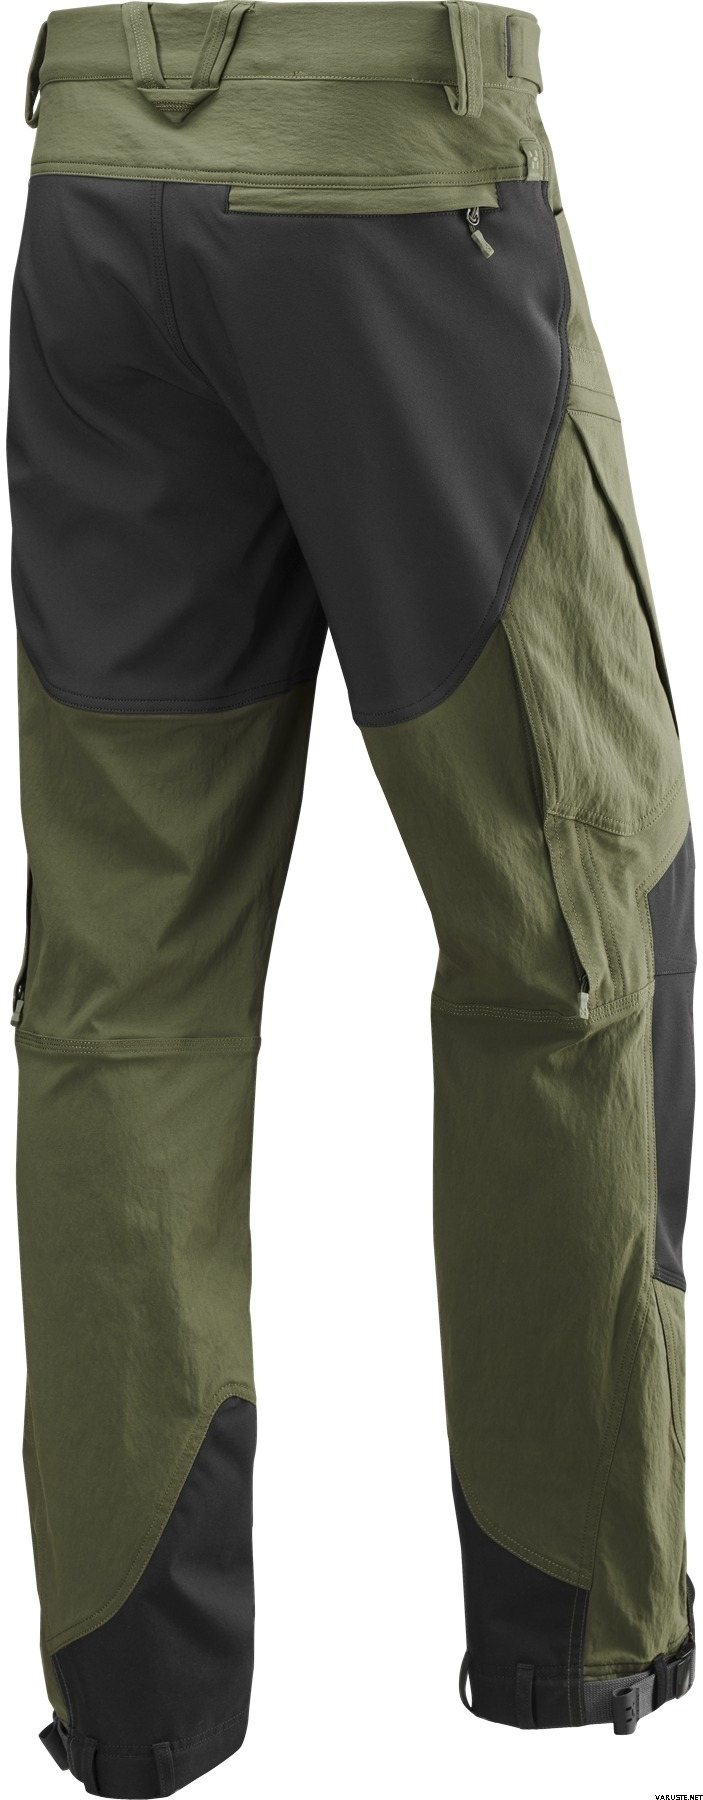 Haglöfs Rugged Ii Mountain Pant Men